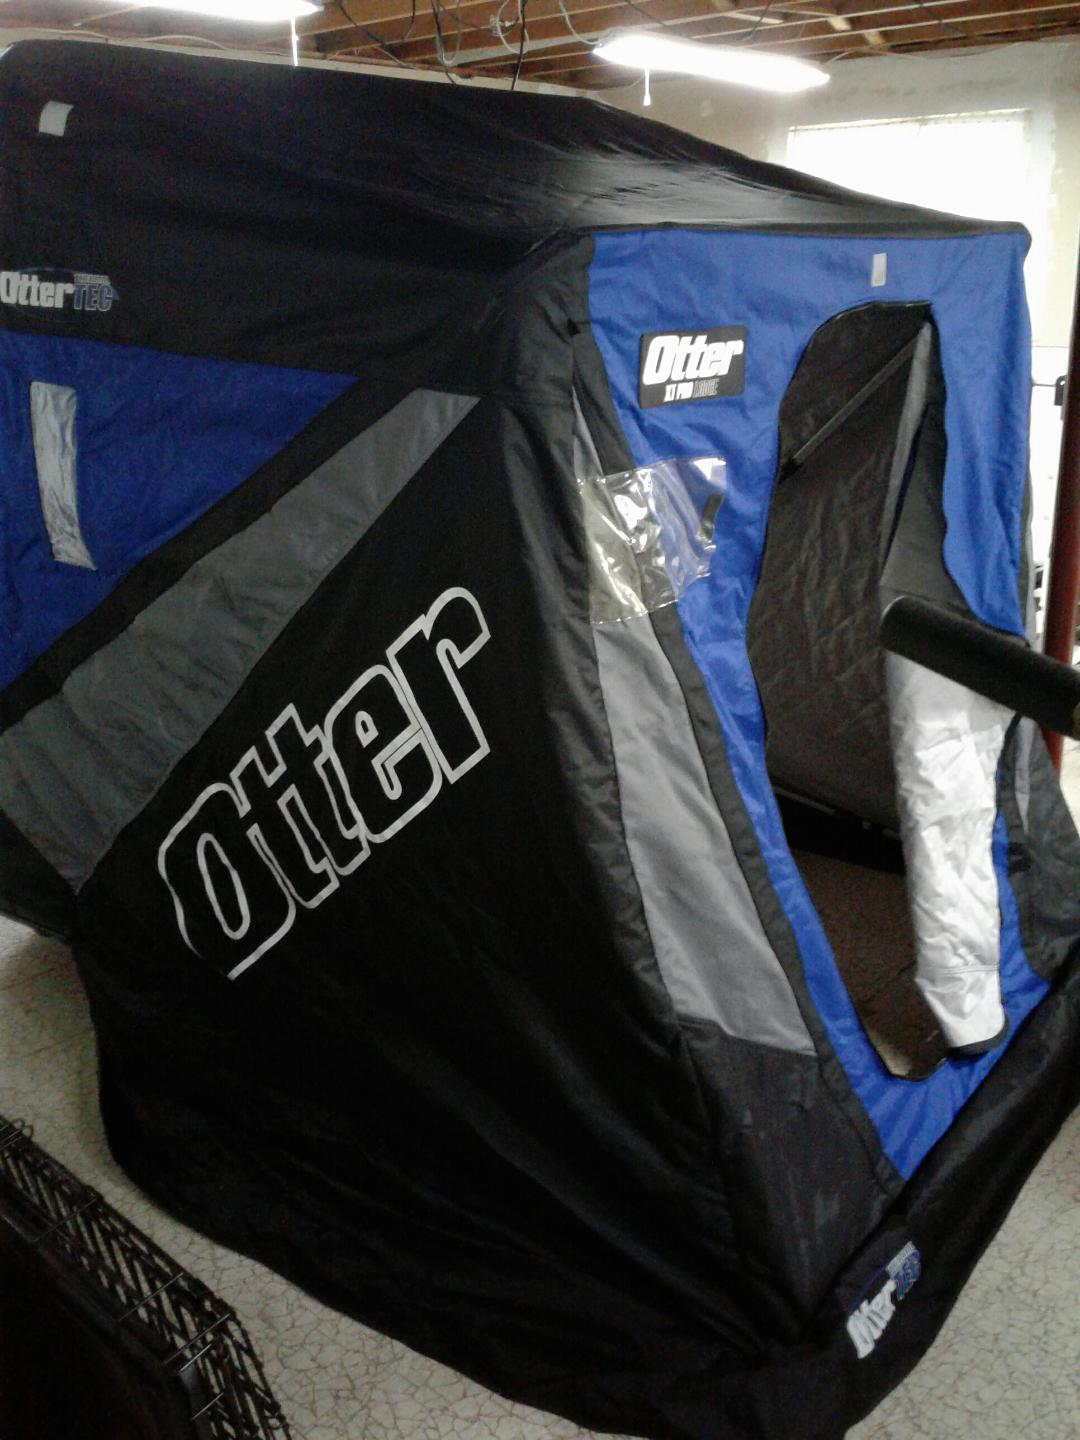 Otter Outdoors XT Pro Lodge Ice Shelter with accessories 750 obo